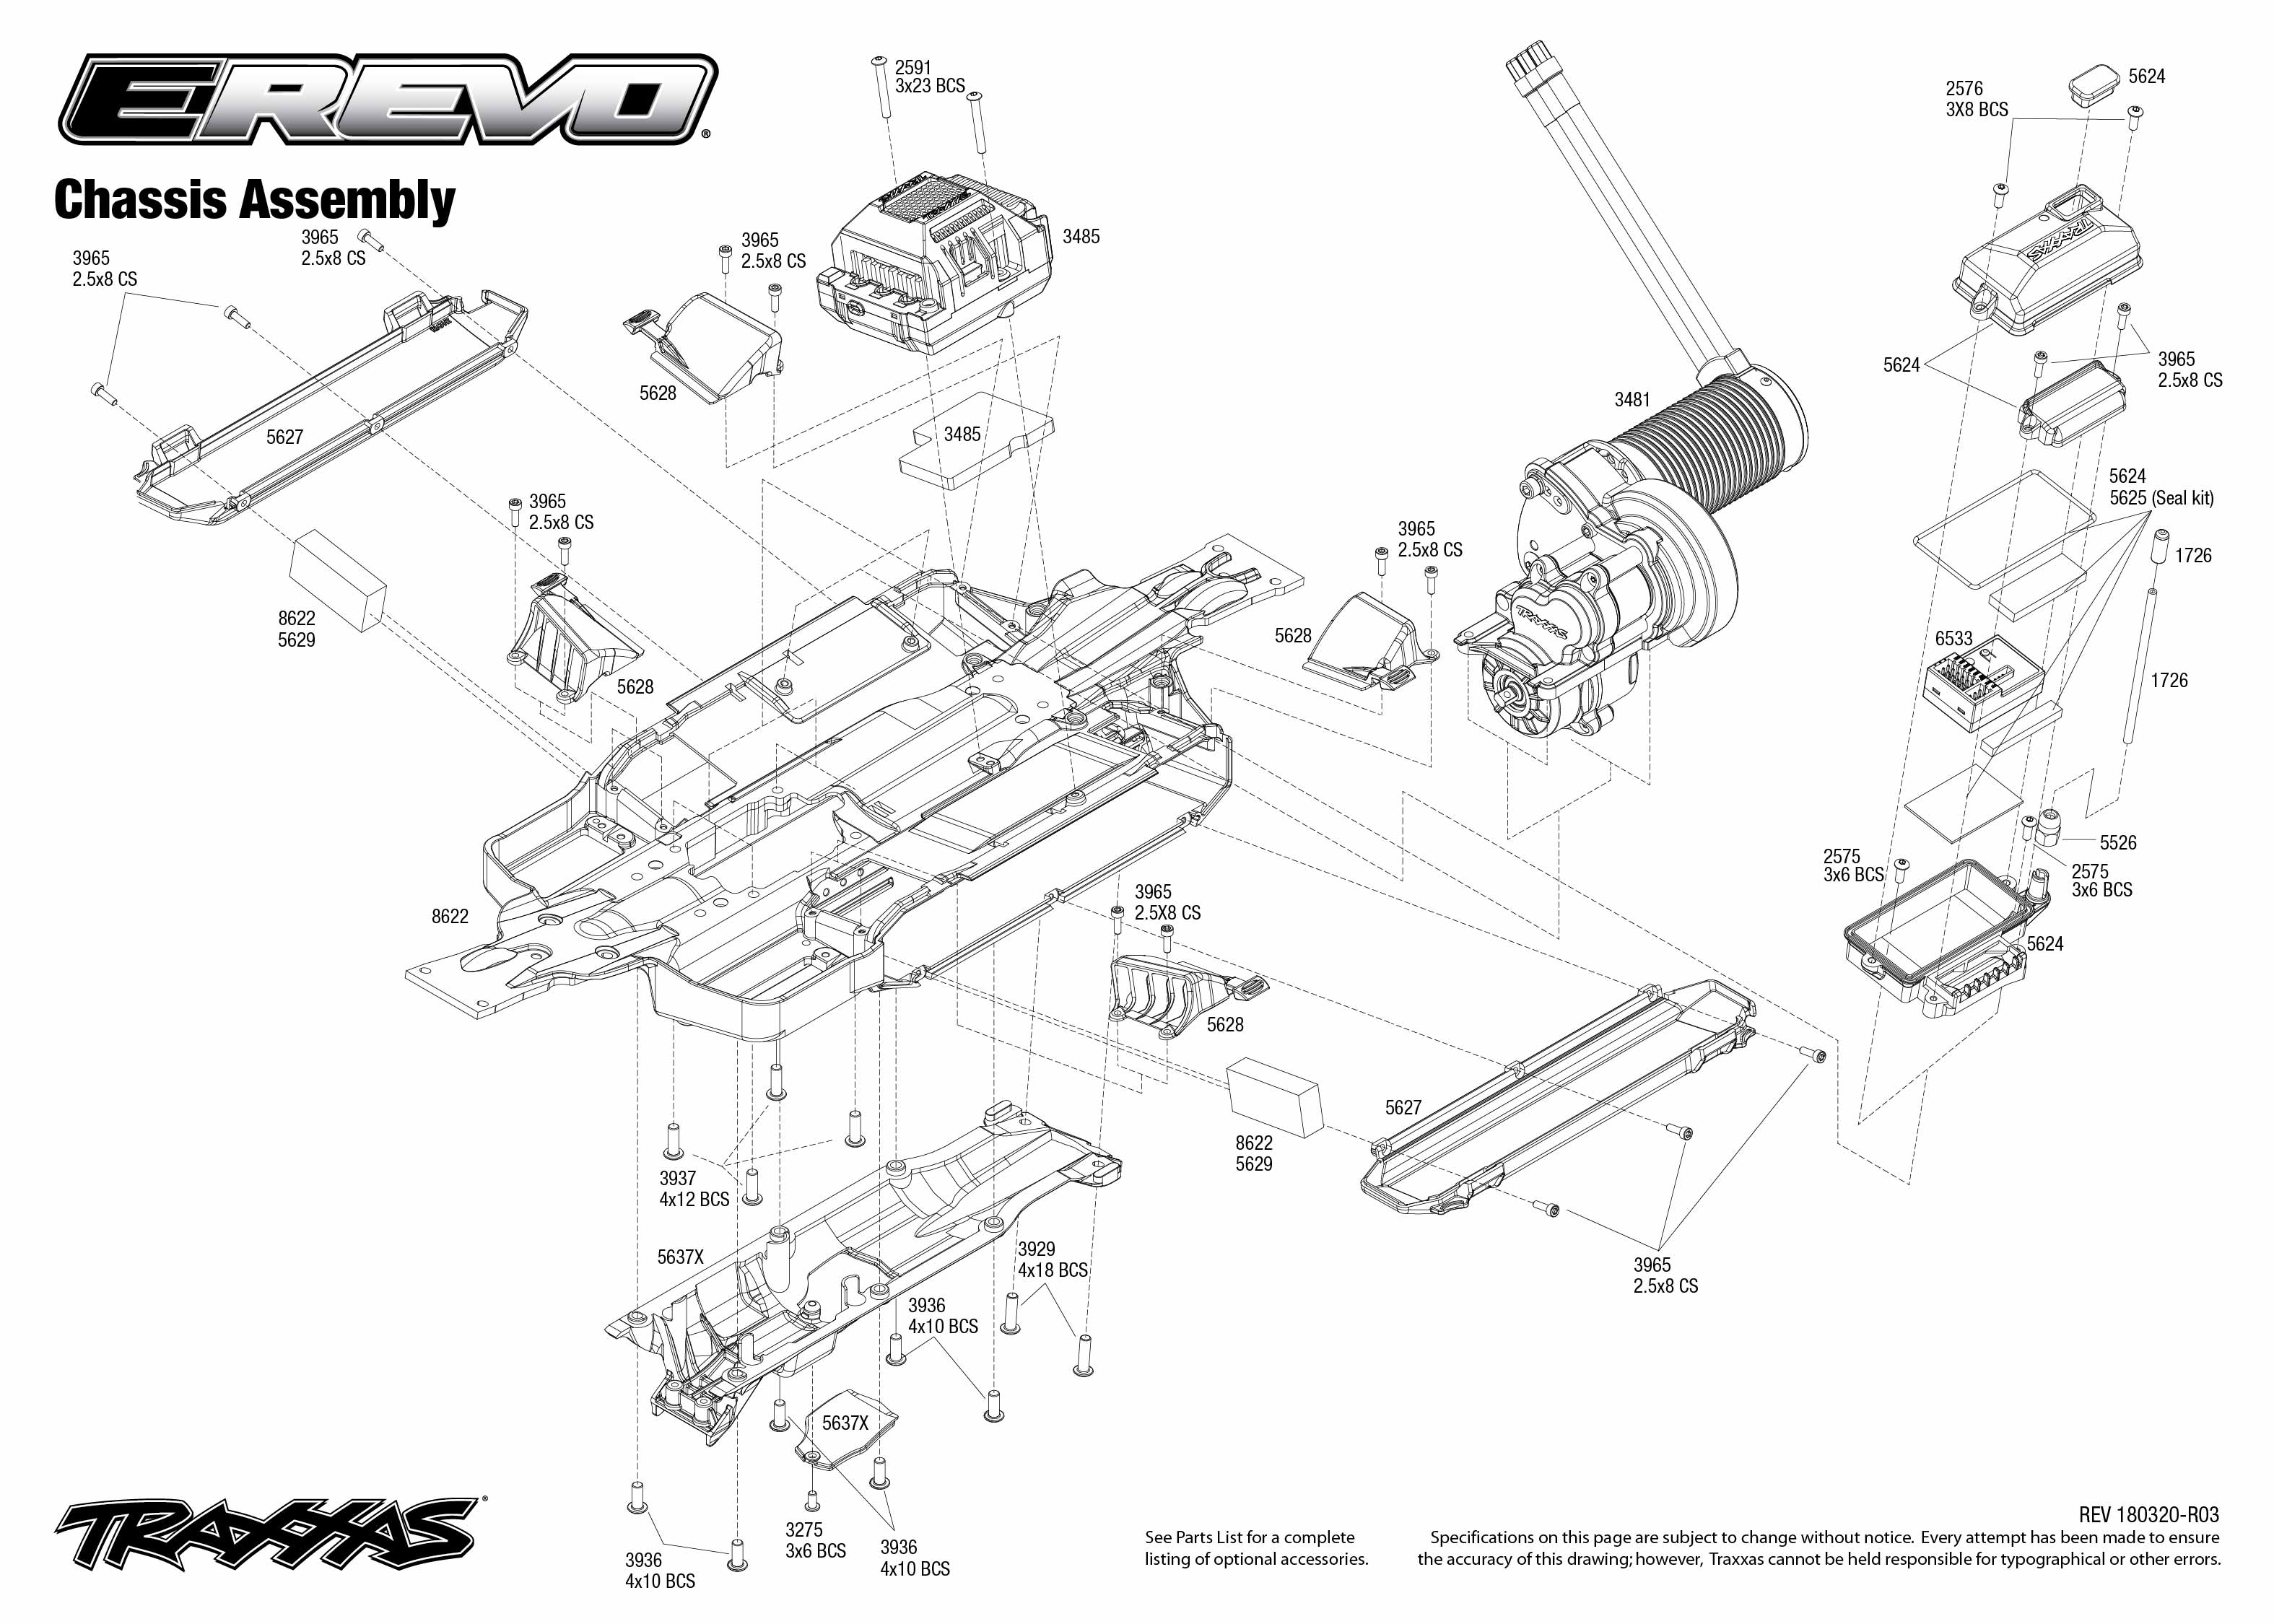 Chassis Assembly Exploded View